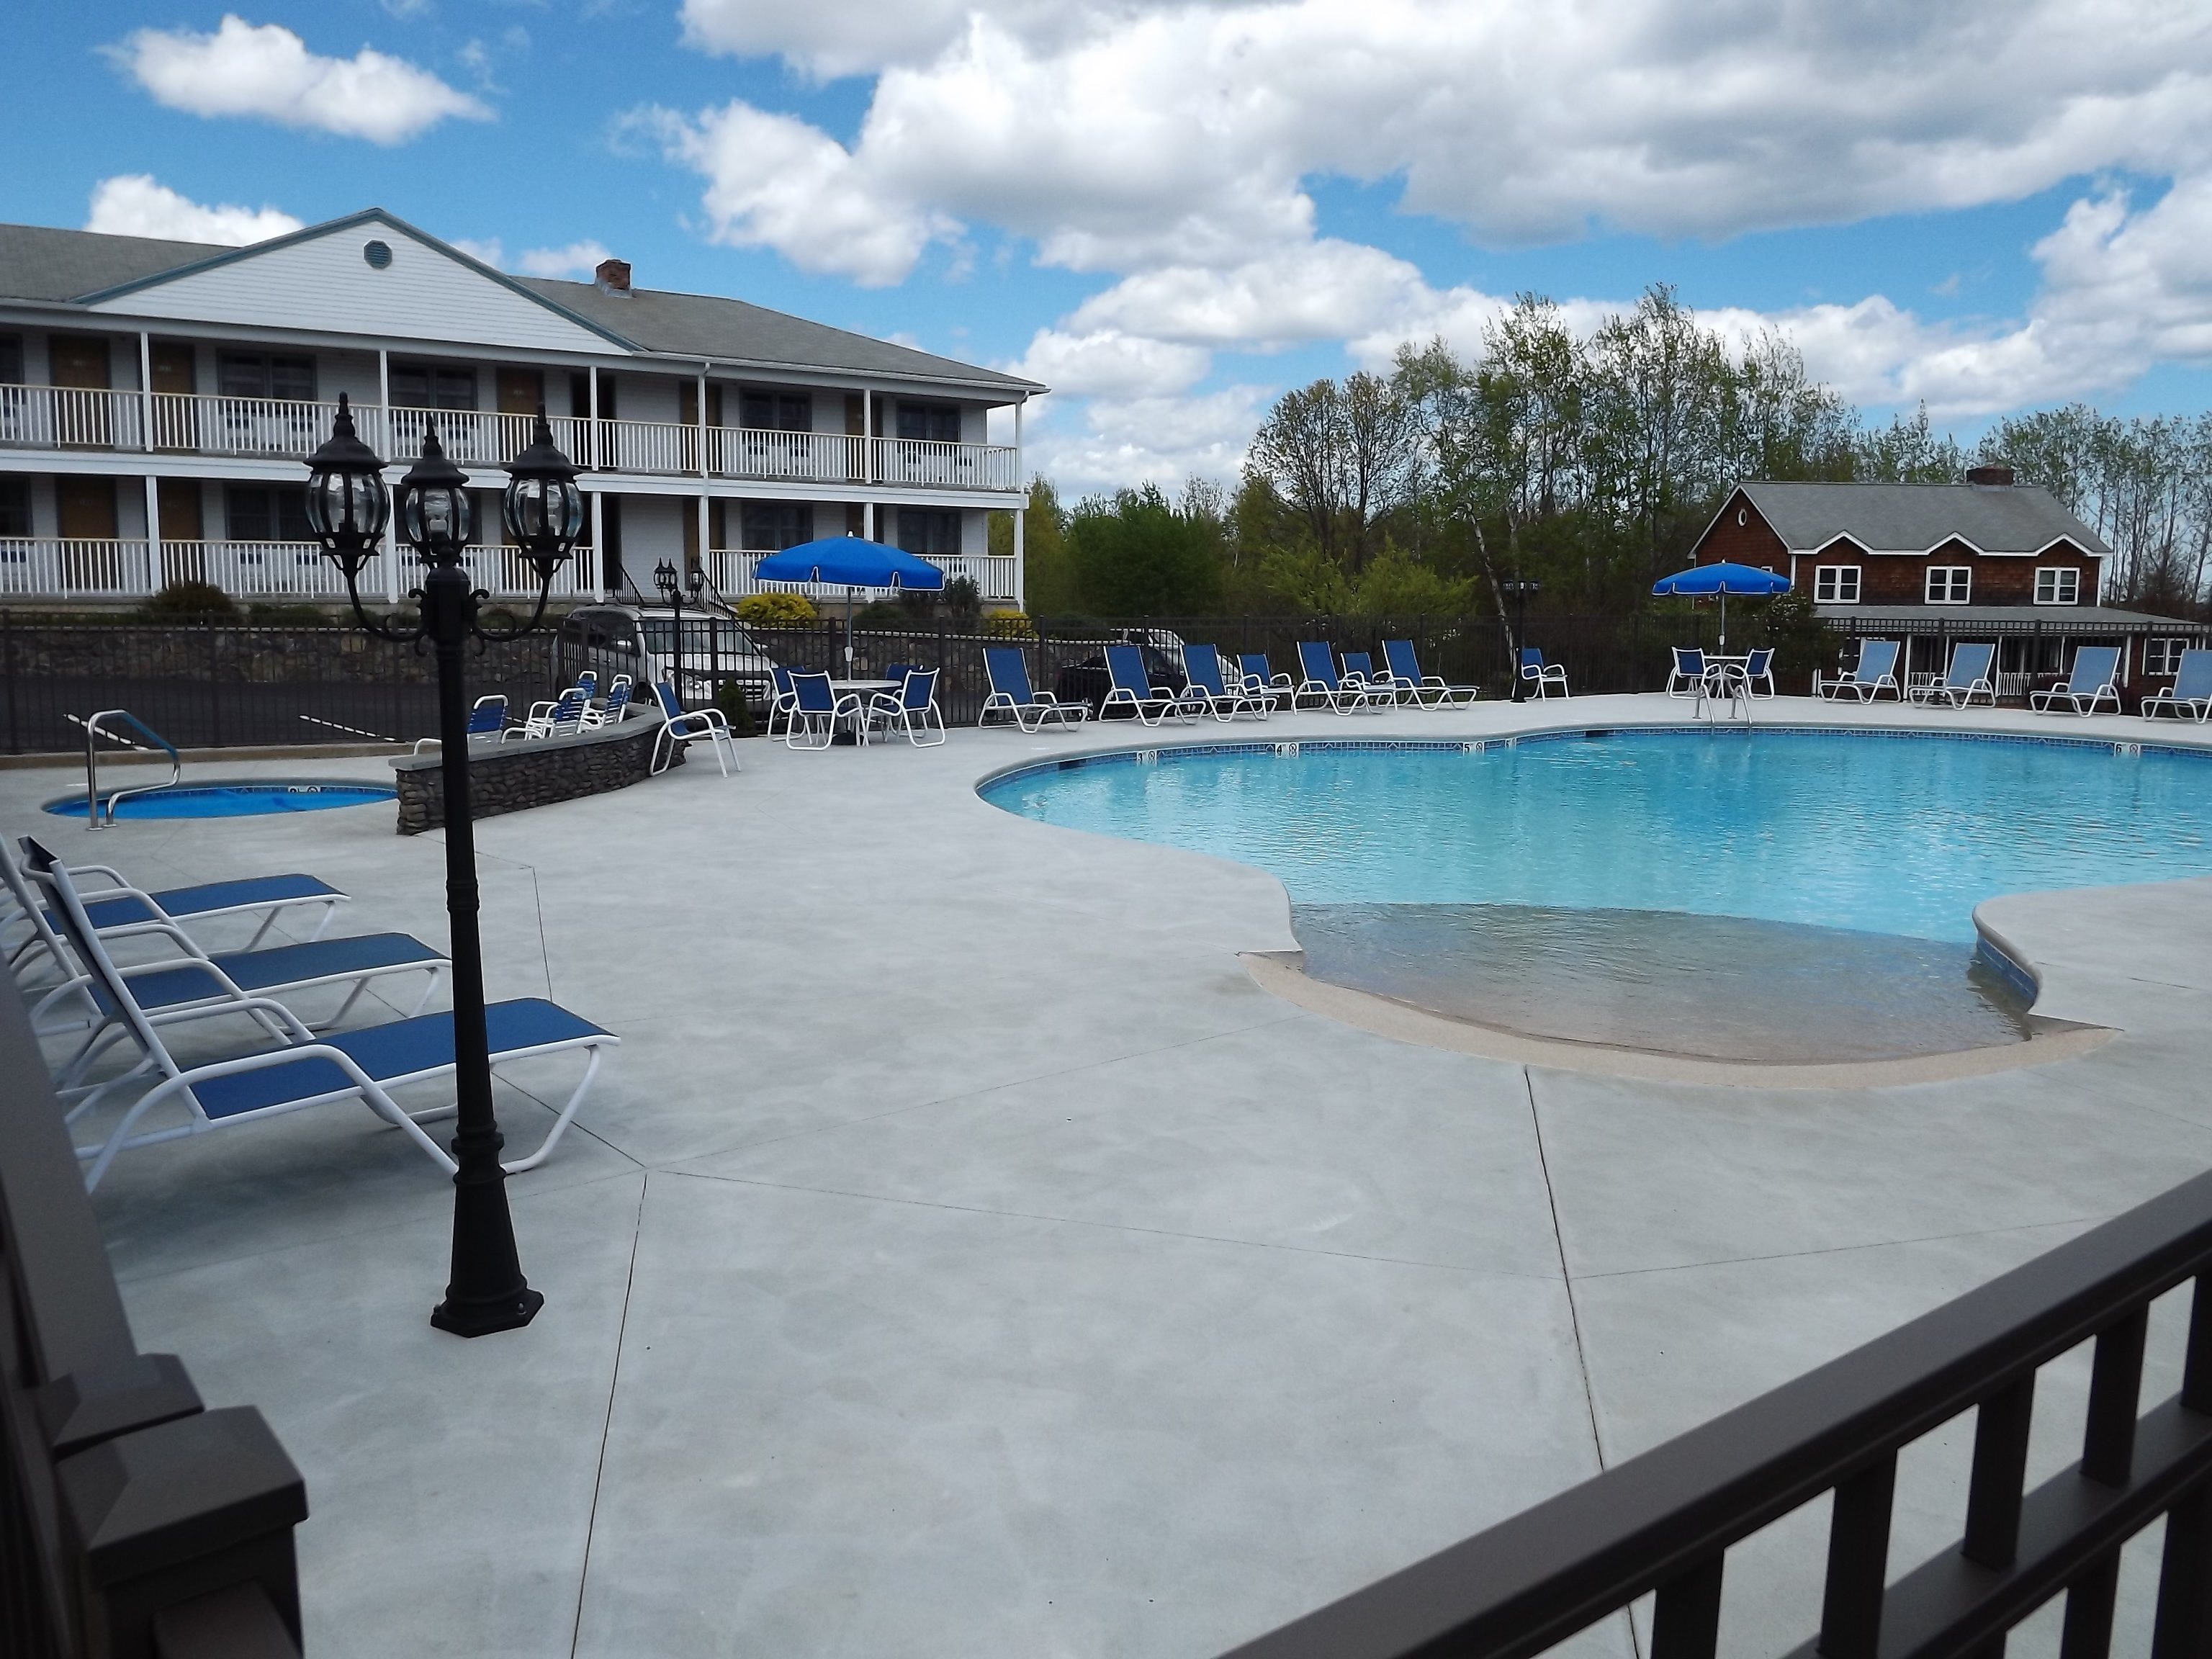 NEWLY renovated outdoor pool